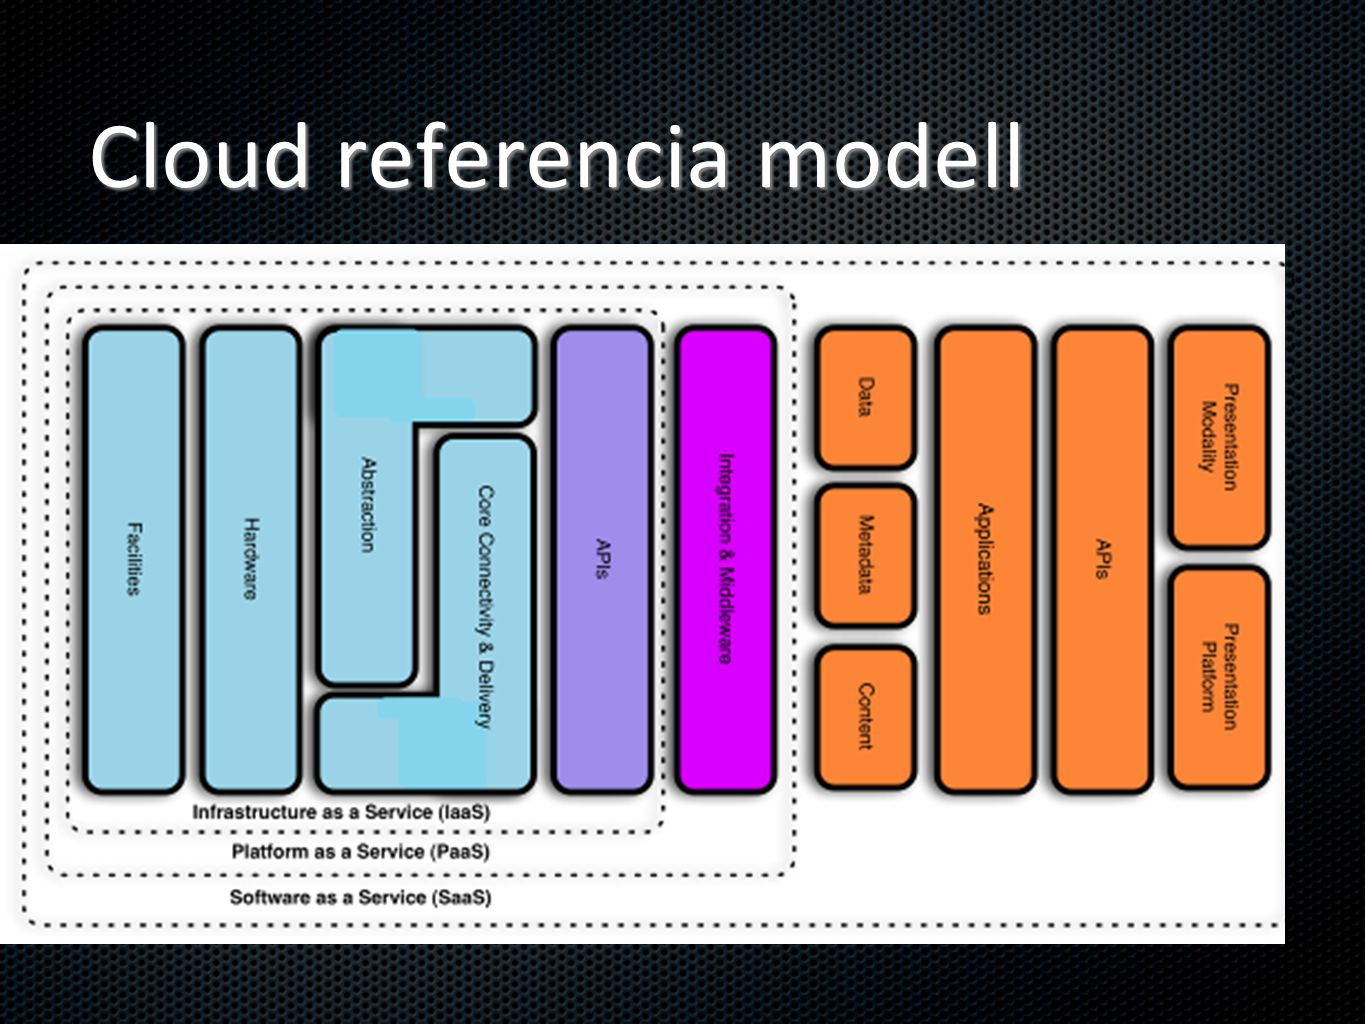 Cloud referencia modell